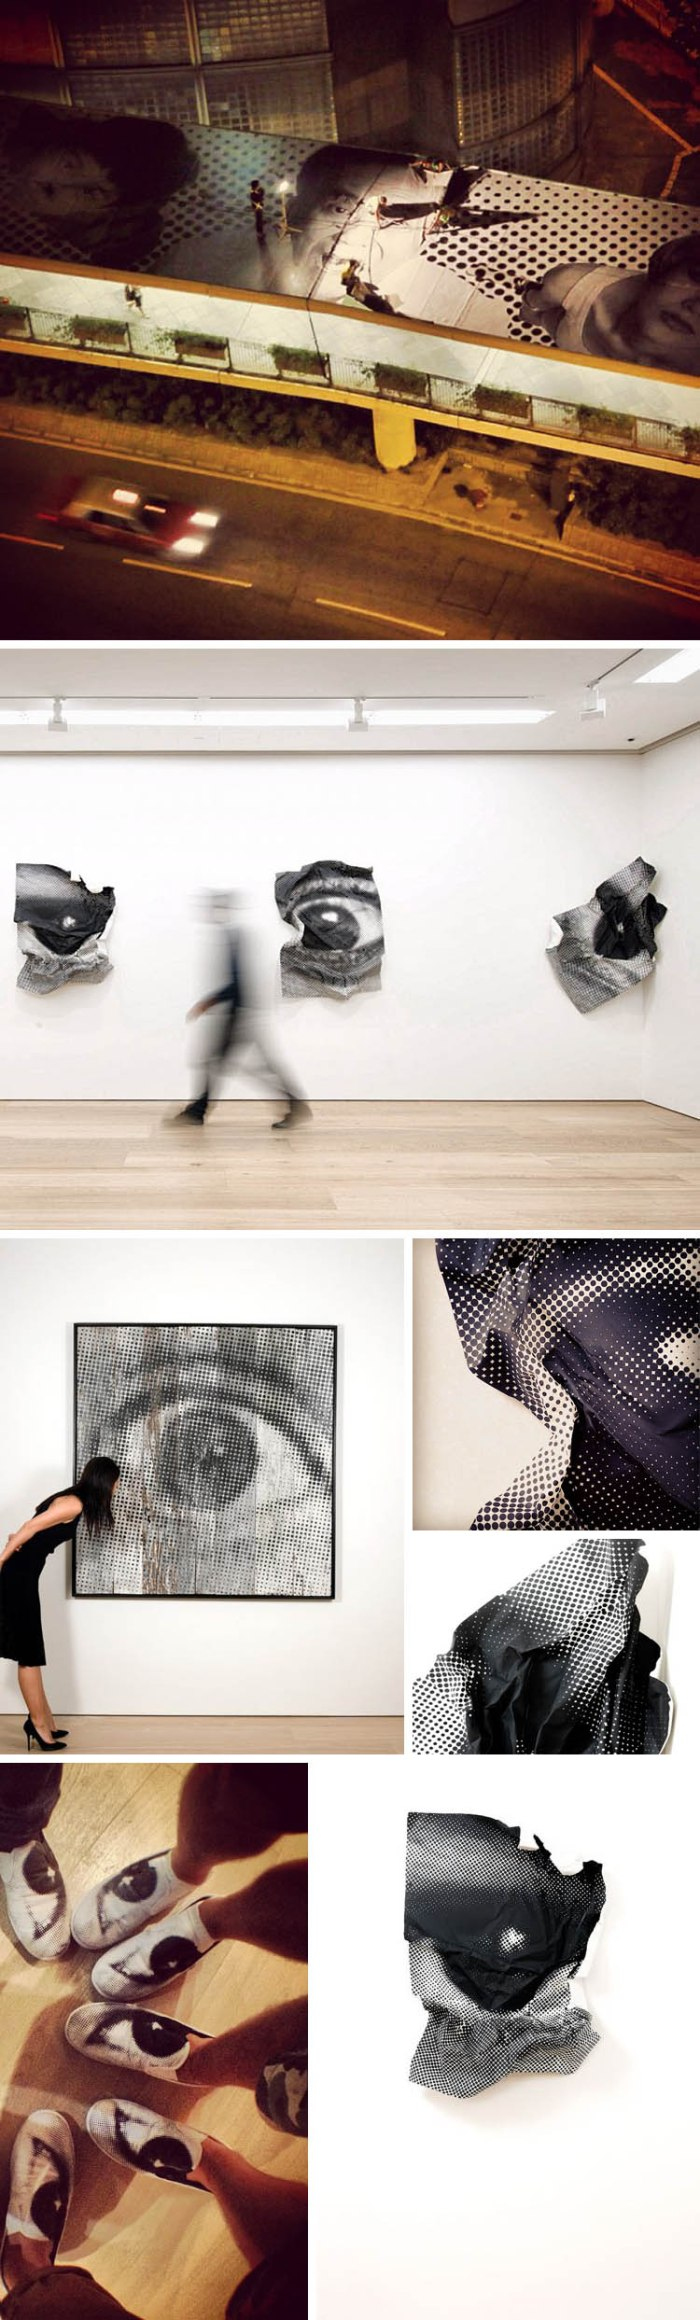 JR, inside out project, photo portrait sculptures Galerie Perrotin in Hong Kong, Patterns exhibit